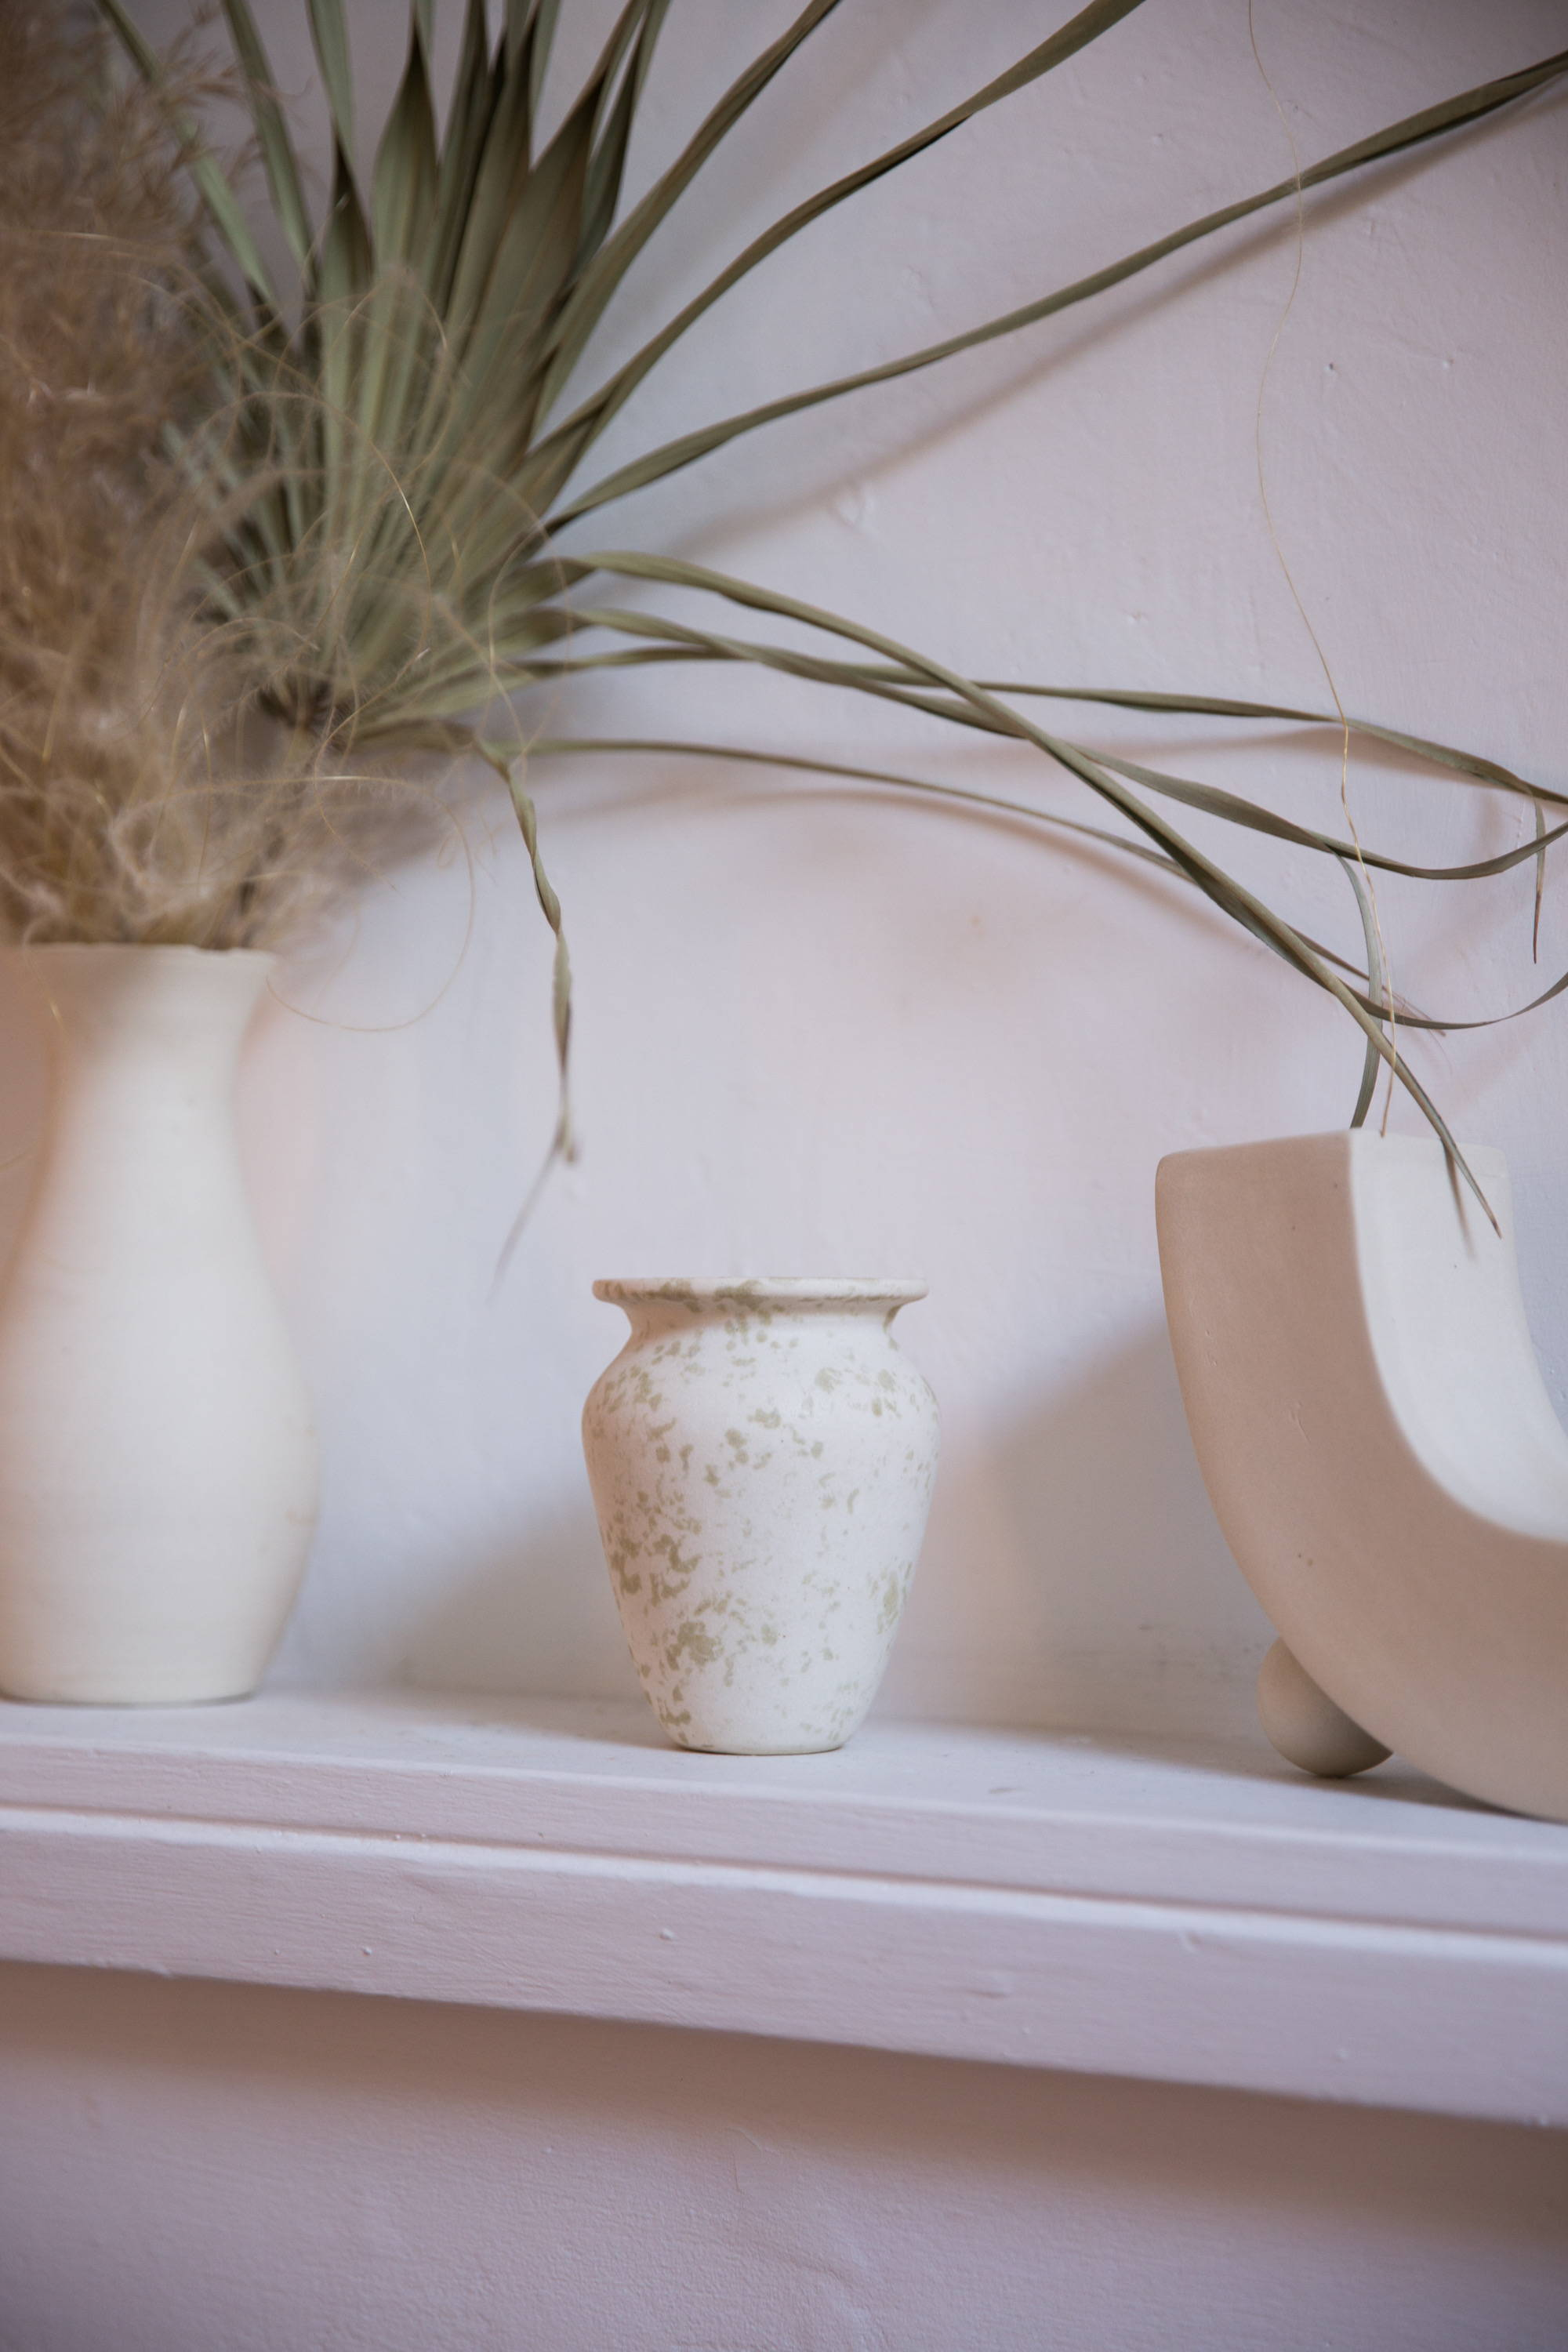 local eclectic | In the Spotlight with Rachel Saunders Ceramics